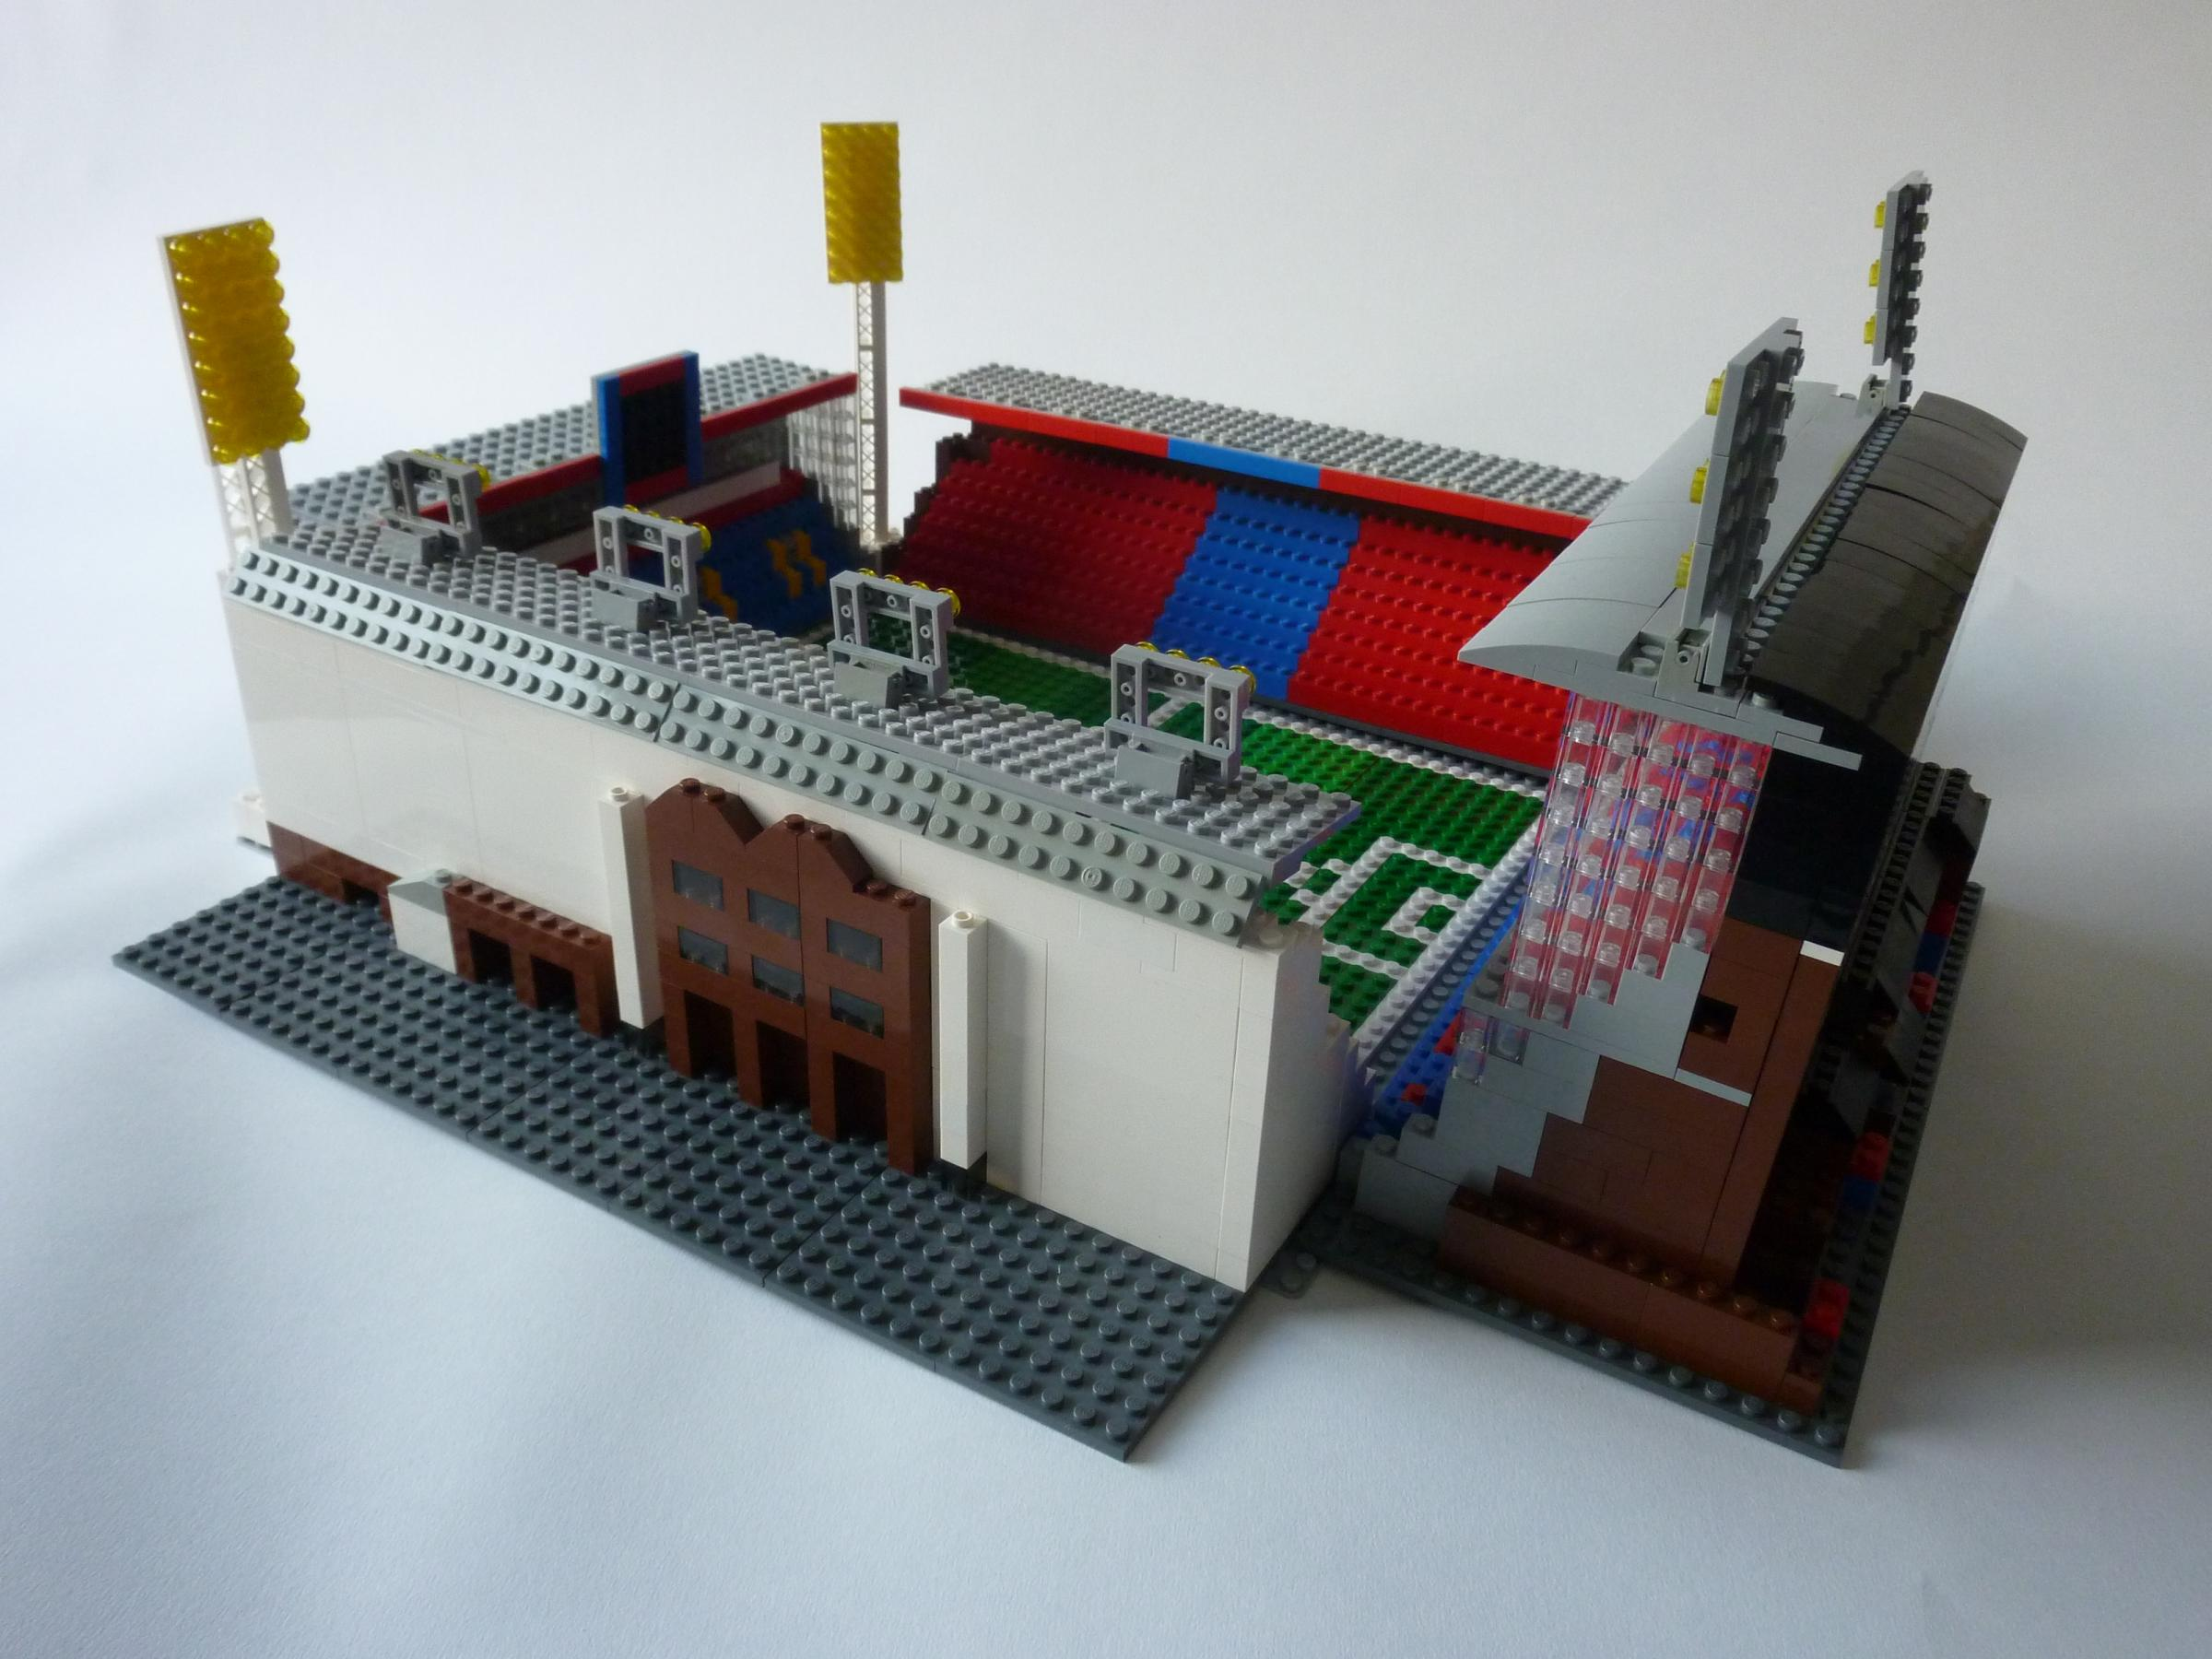 Welcome to Selhurst Park - made from Lego